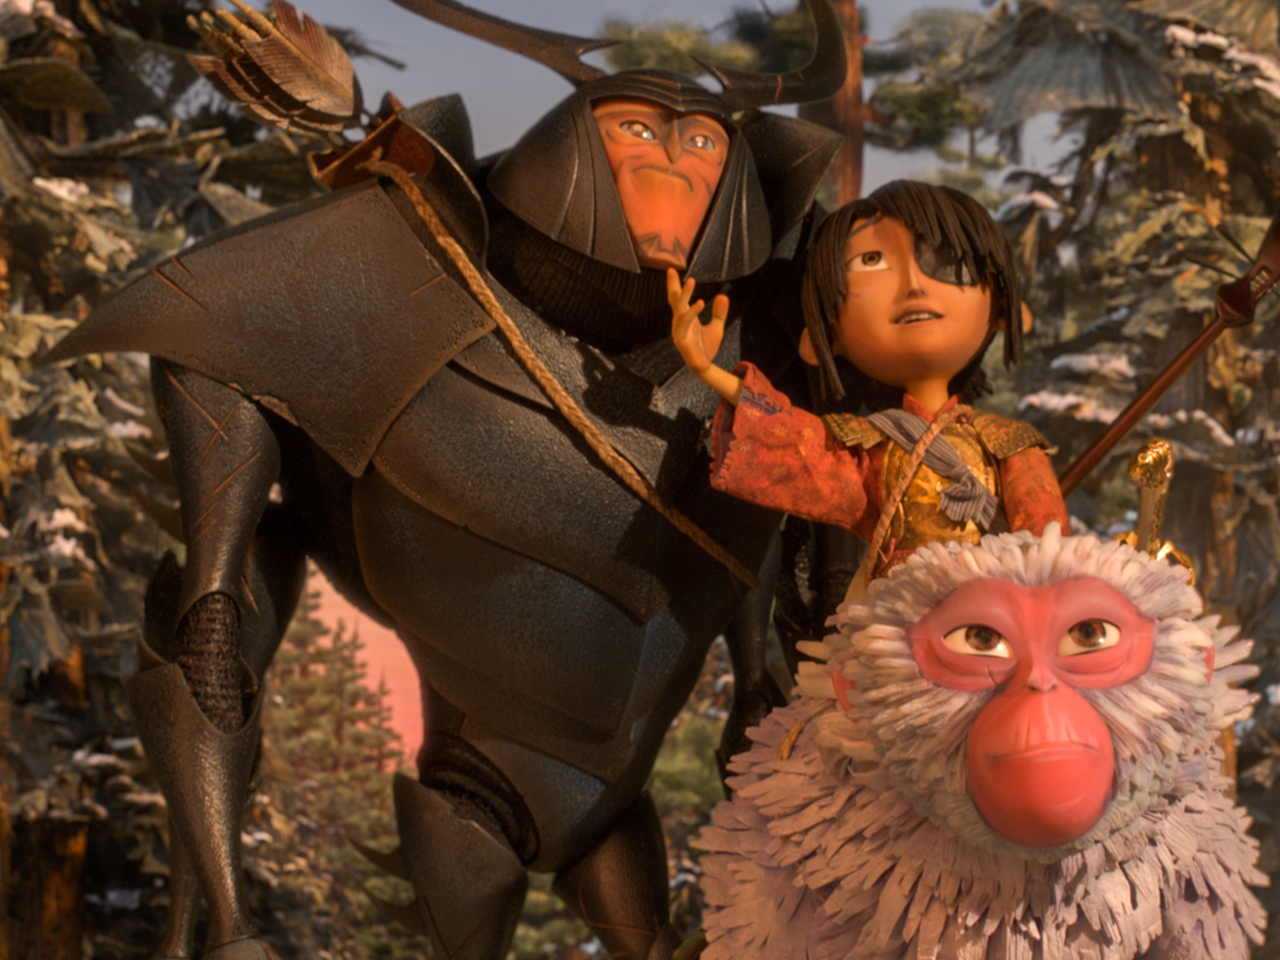 A still from the kids' animated movie Kubo and the Two Strings